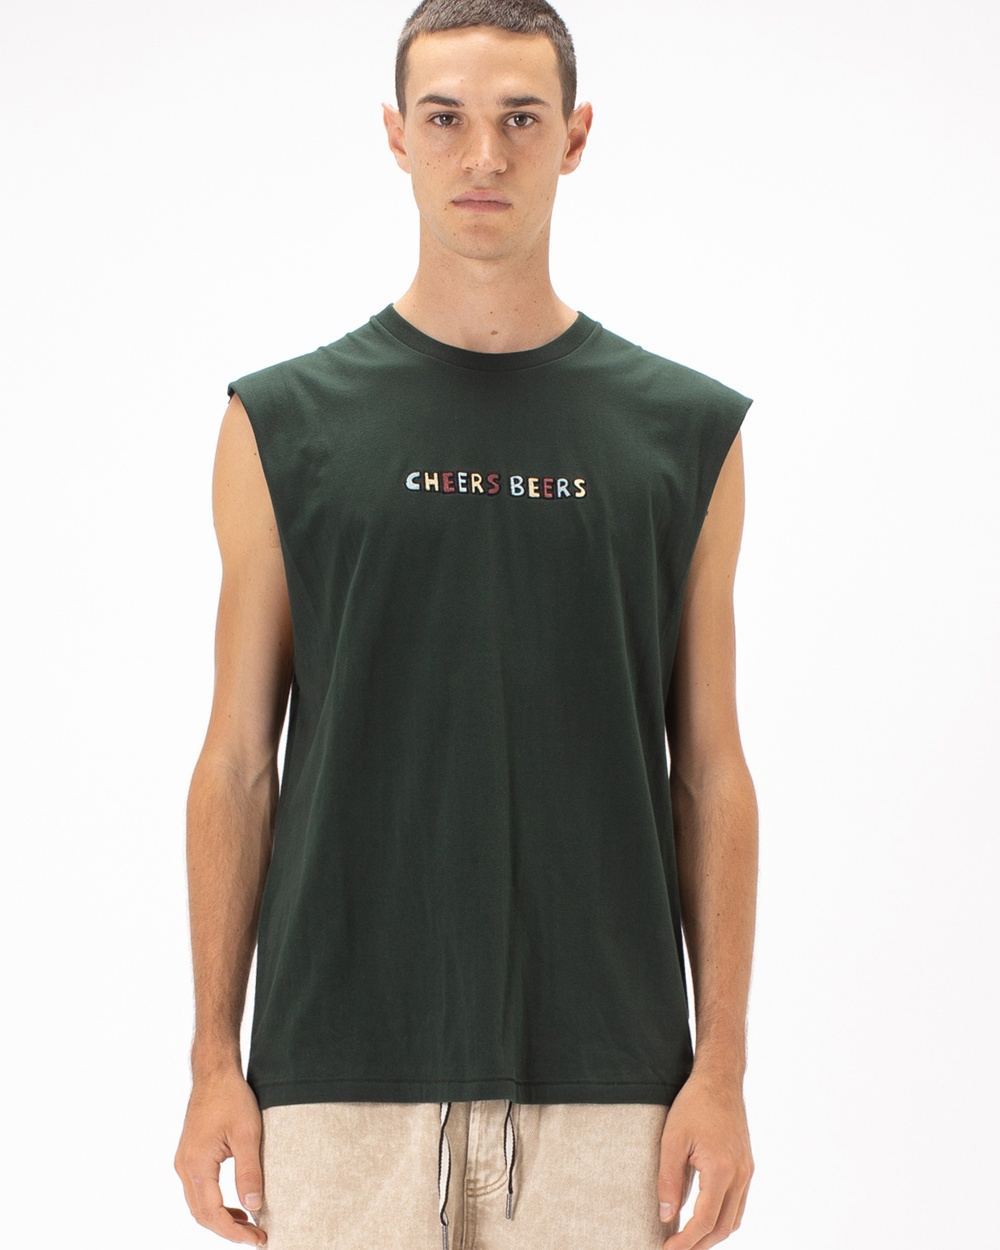 Barney Cools Cheers Beers Muscle Tee Tops Forest Australia